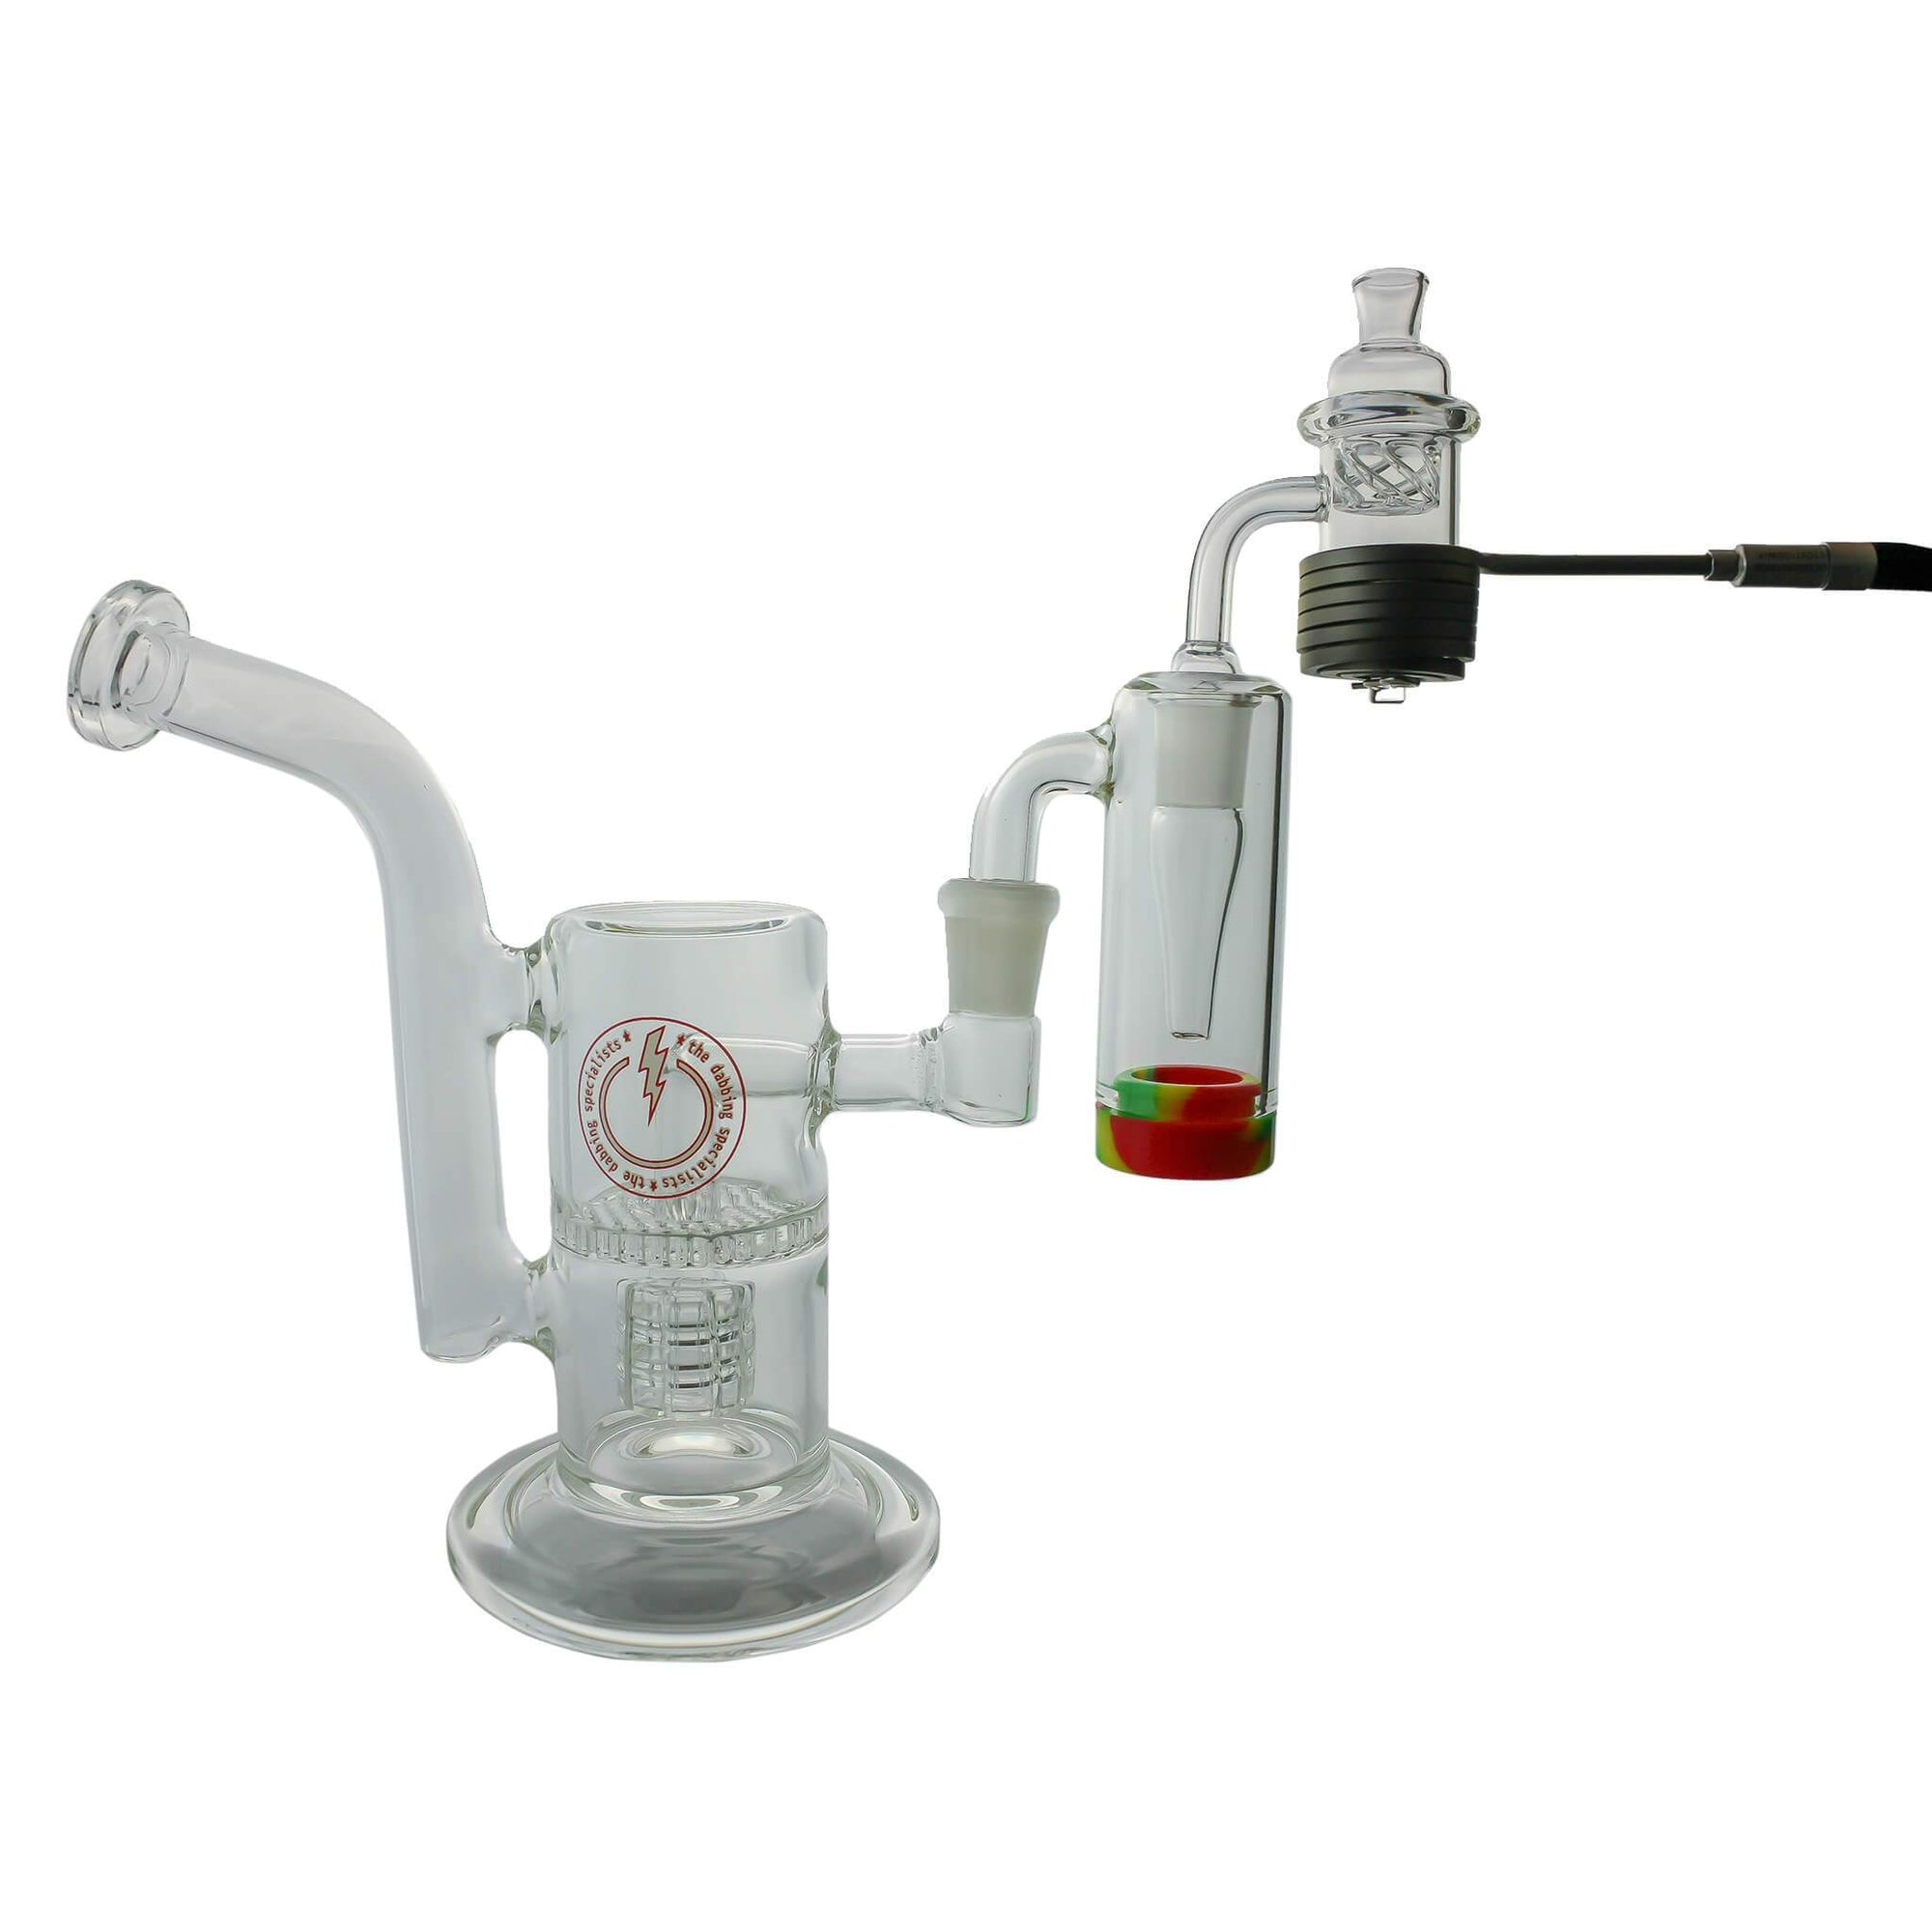 25mm Mini Enail Complete Dabbing Kit_Profile